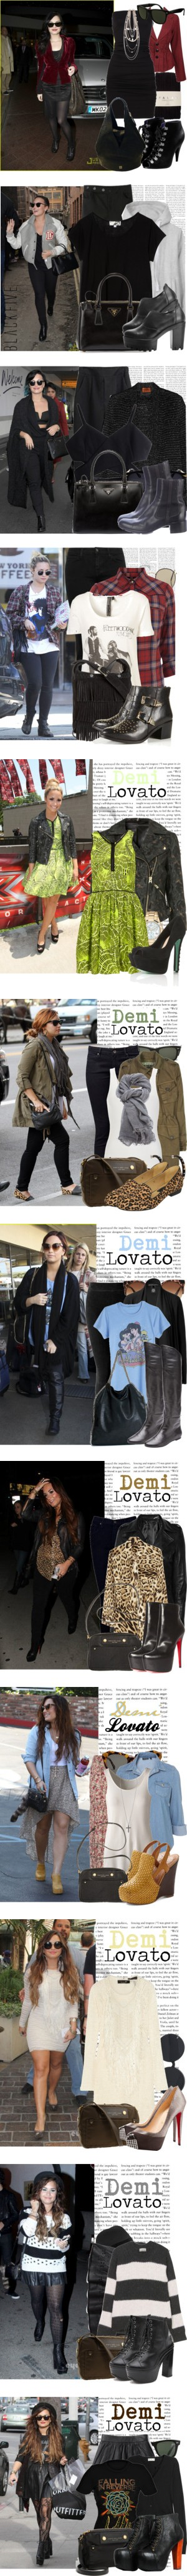 Dress like Demi Lovato by megi32 on Polyvore featuring Falke, H&M, Forever 21, Wolford, Givenchy, Ray-Ban, ALDO, The Lady & The Sailor, Prada and BlackFive